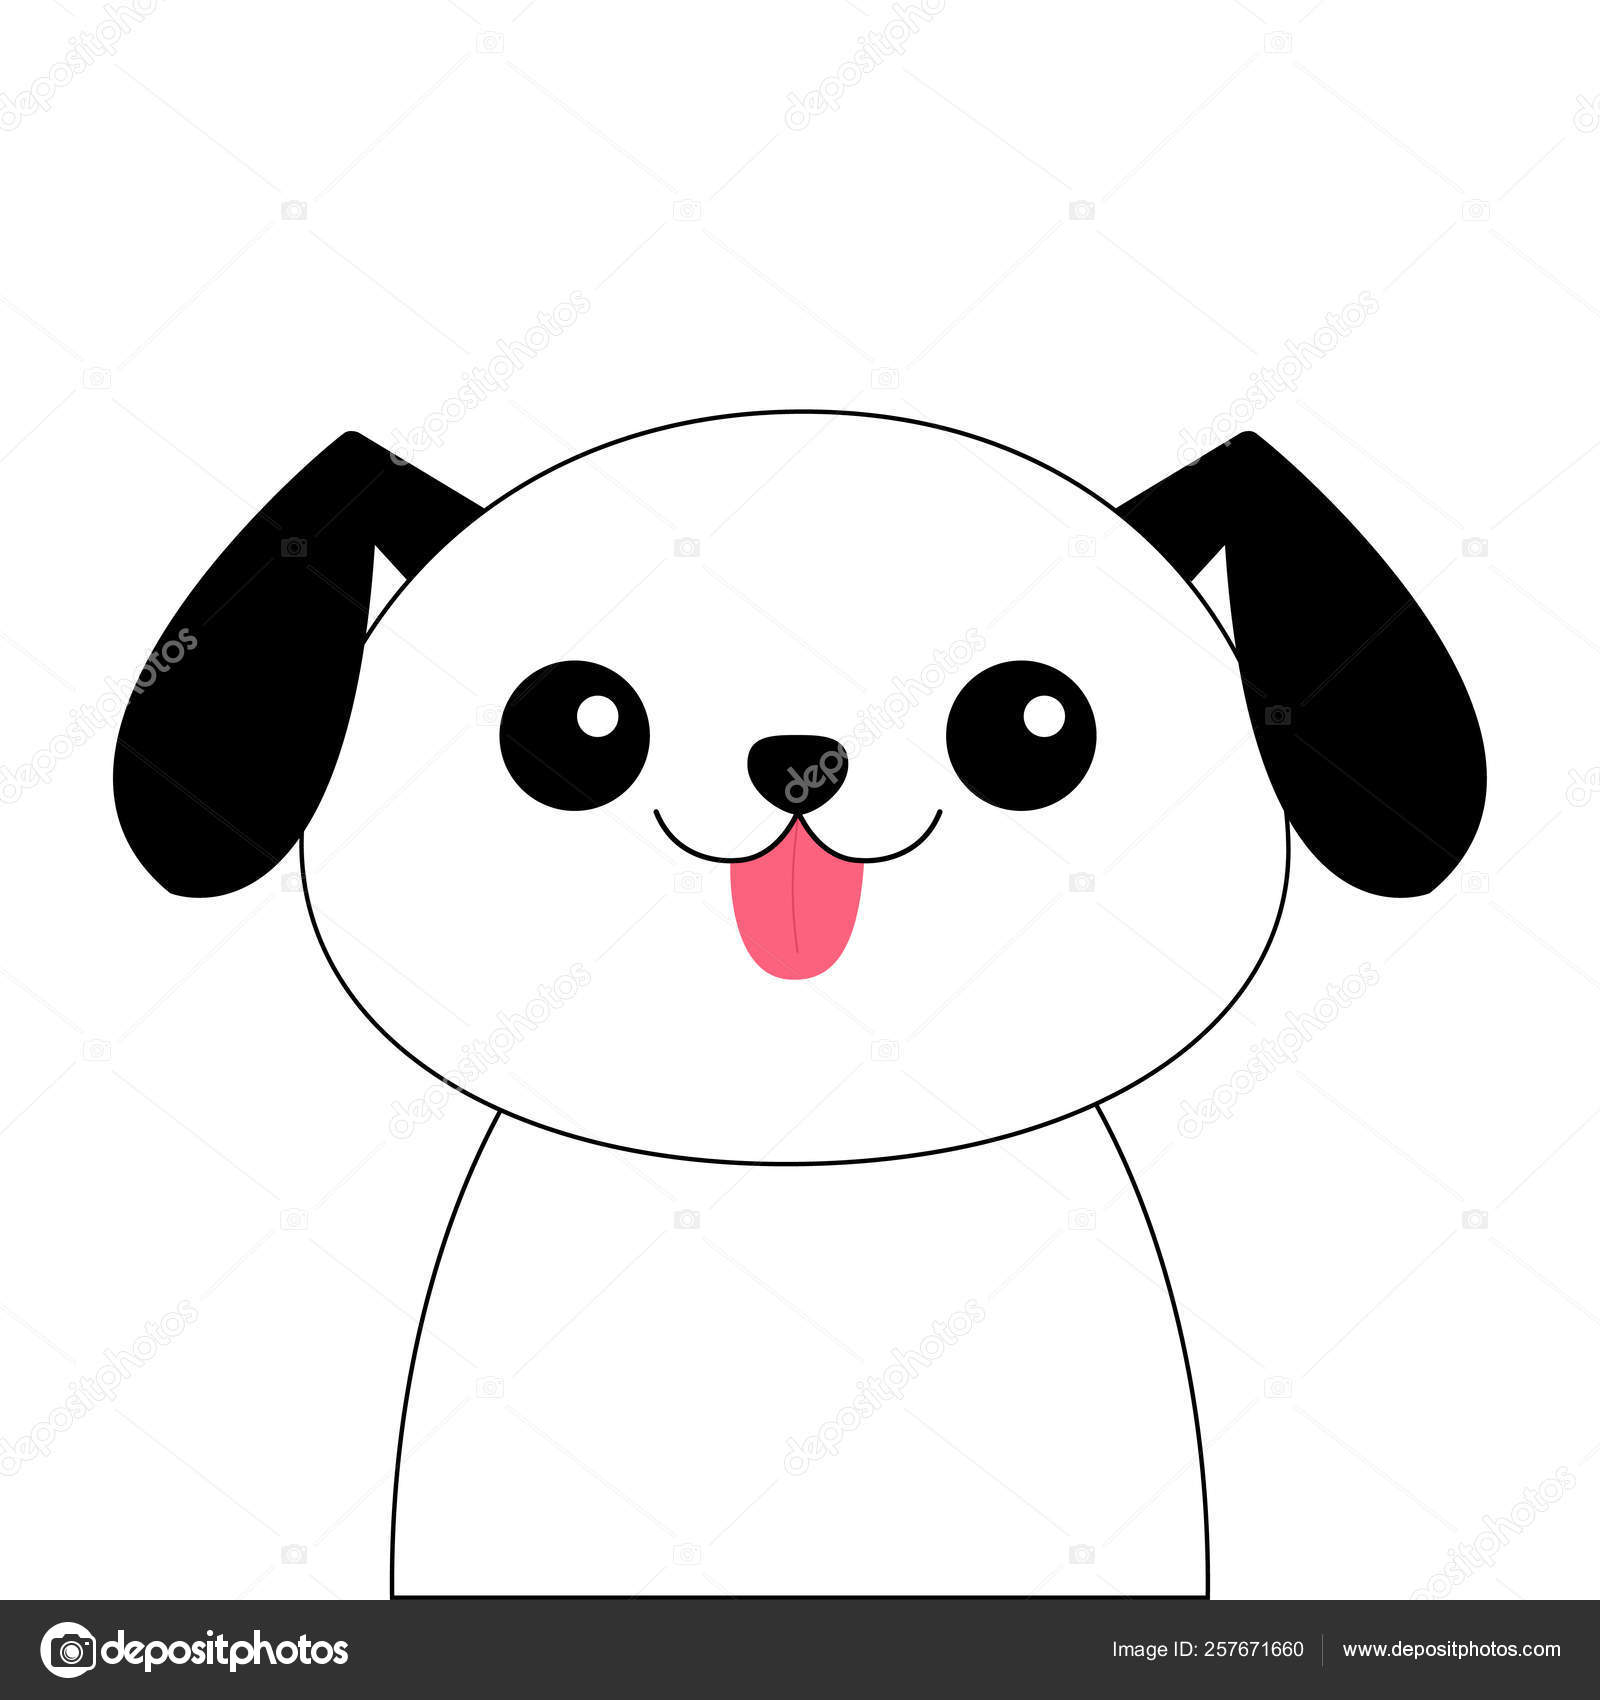 Dog Contour Line Head Face Silhouette Doodle Linear Sketch Cute Cartoon Pooch Character Kawaii Animal Funny Baby Puppy Love Greeting Card Flat Design White Background Isolated Stock Vector C Worldofvector 257671660